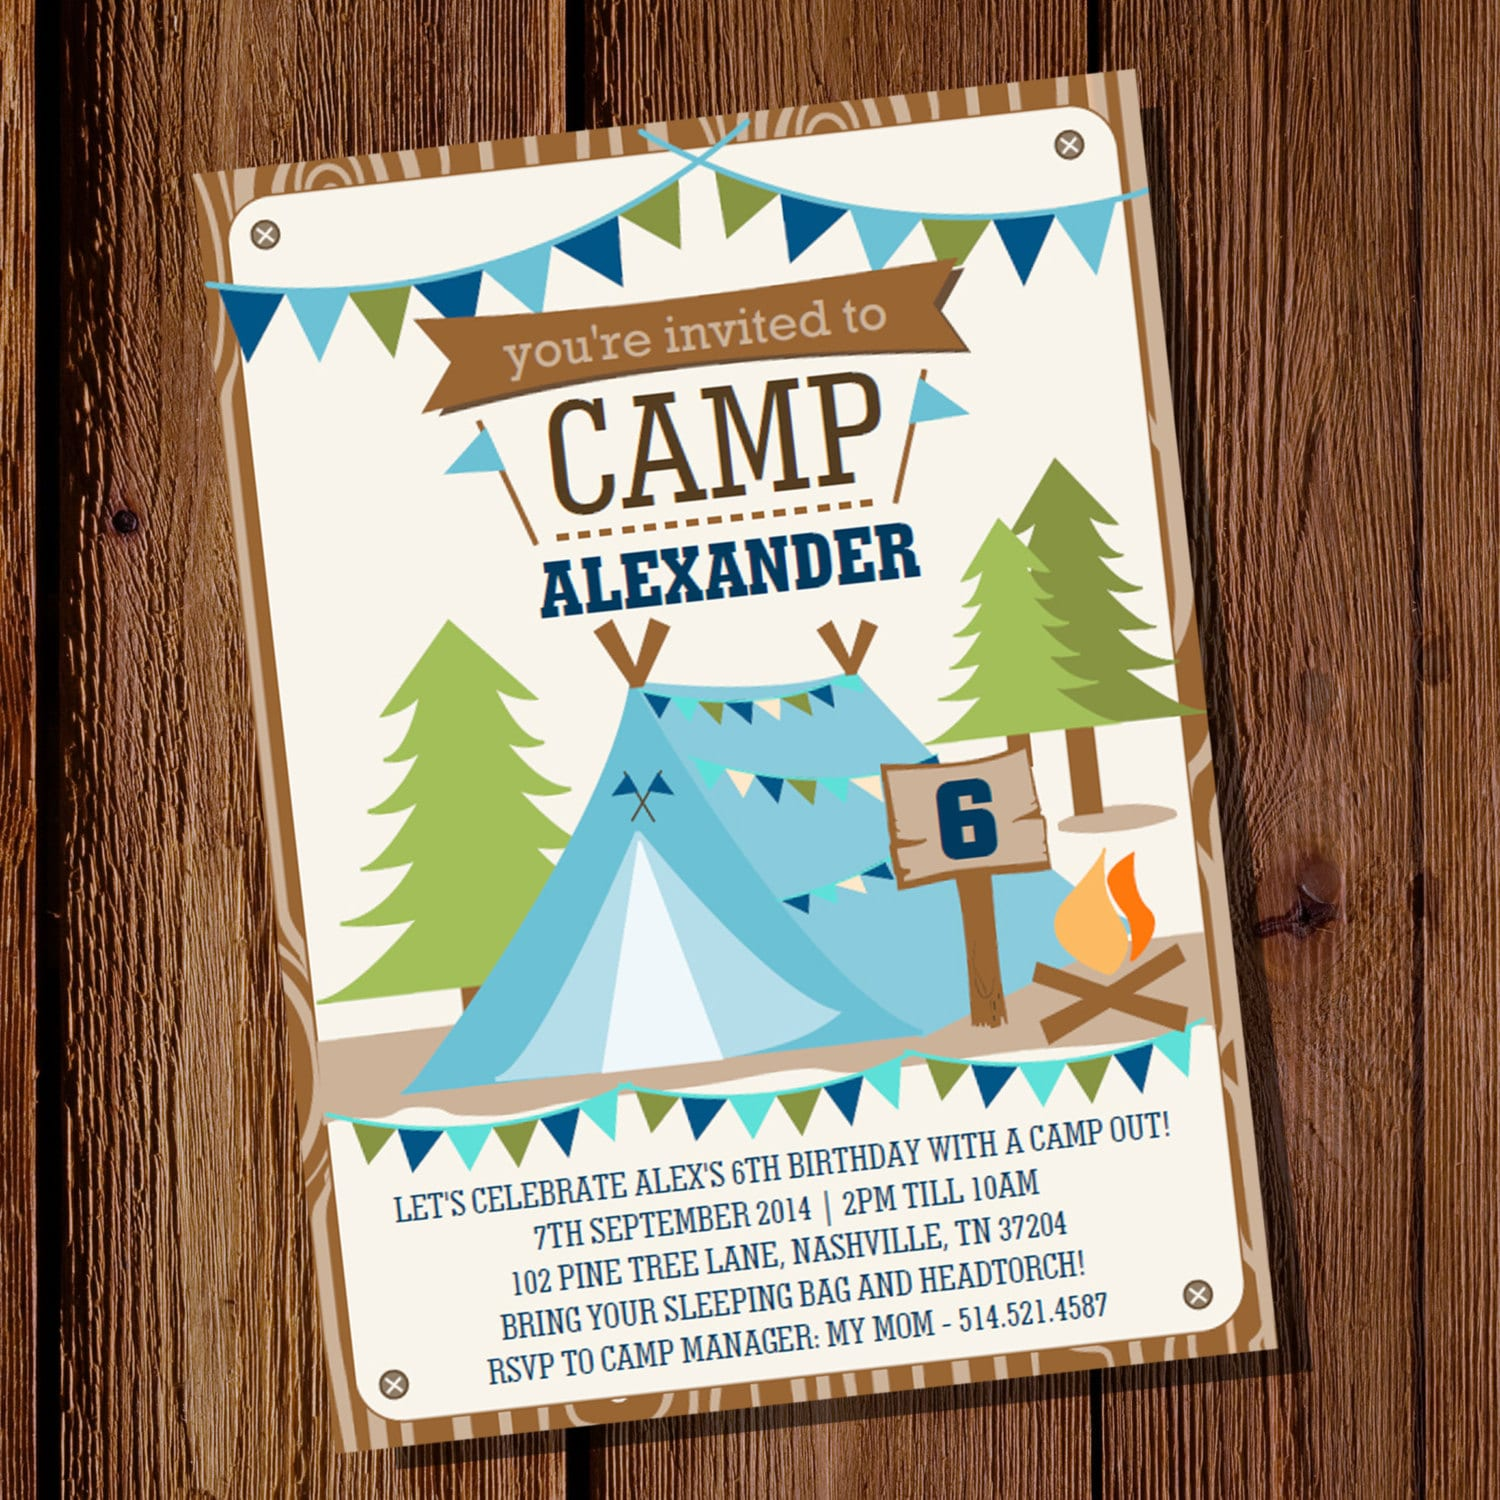 Camping Theme Invitations: Camping Party Invitation For A Boy Backyard Campout Summer